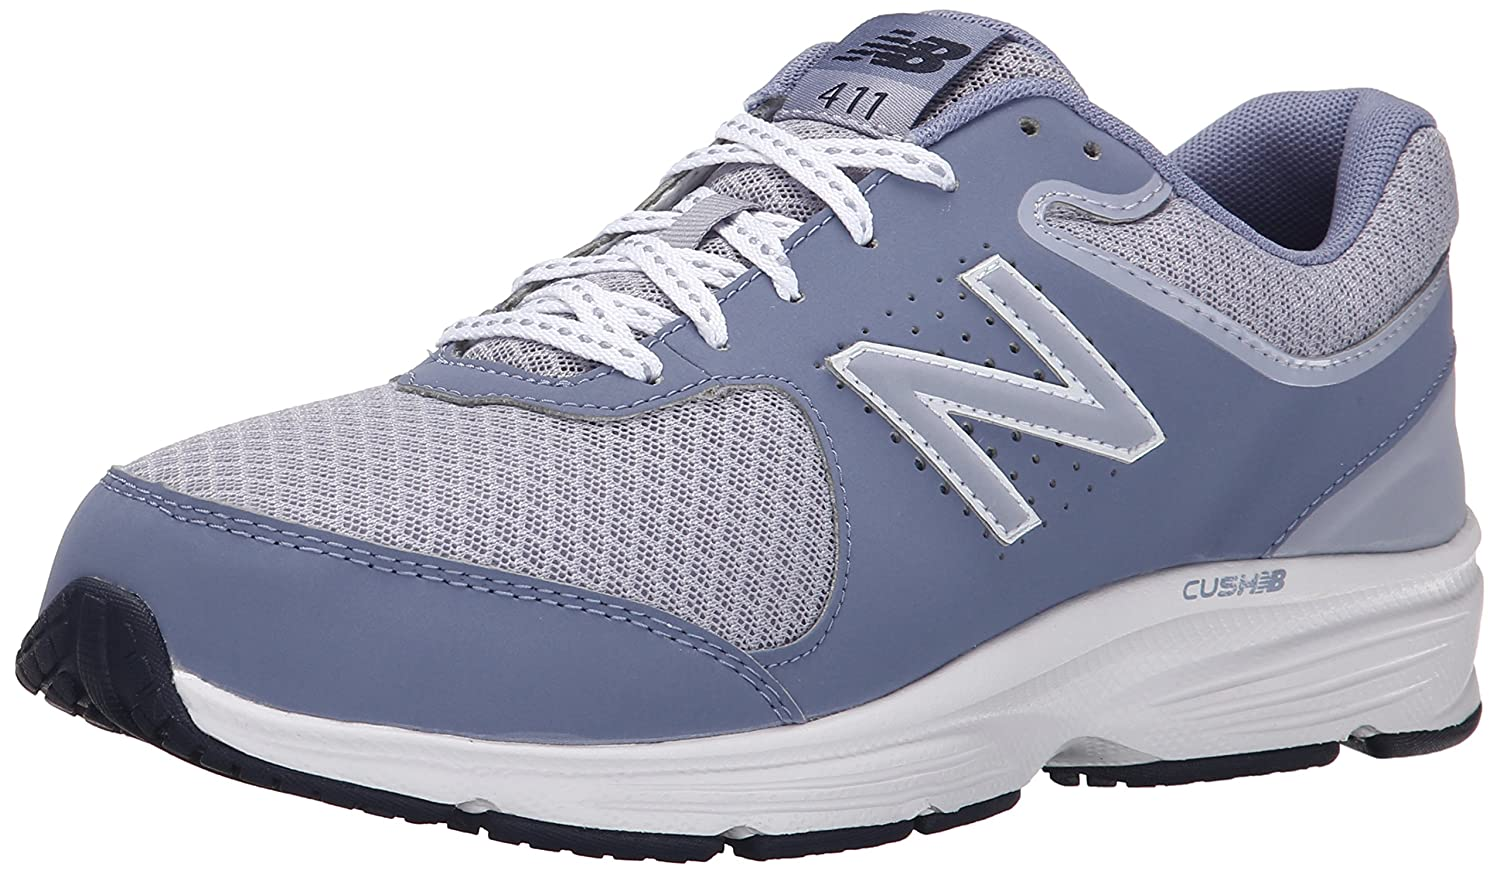 New Balance Women's WW411v2 Walking Shoe B00V3QSMQ4 5 B(M) US|Grey